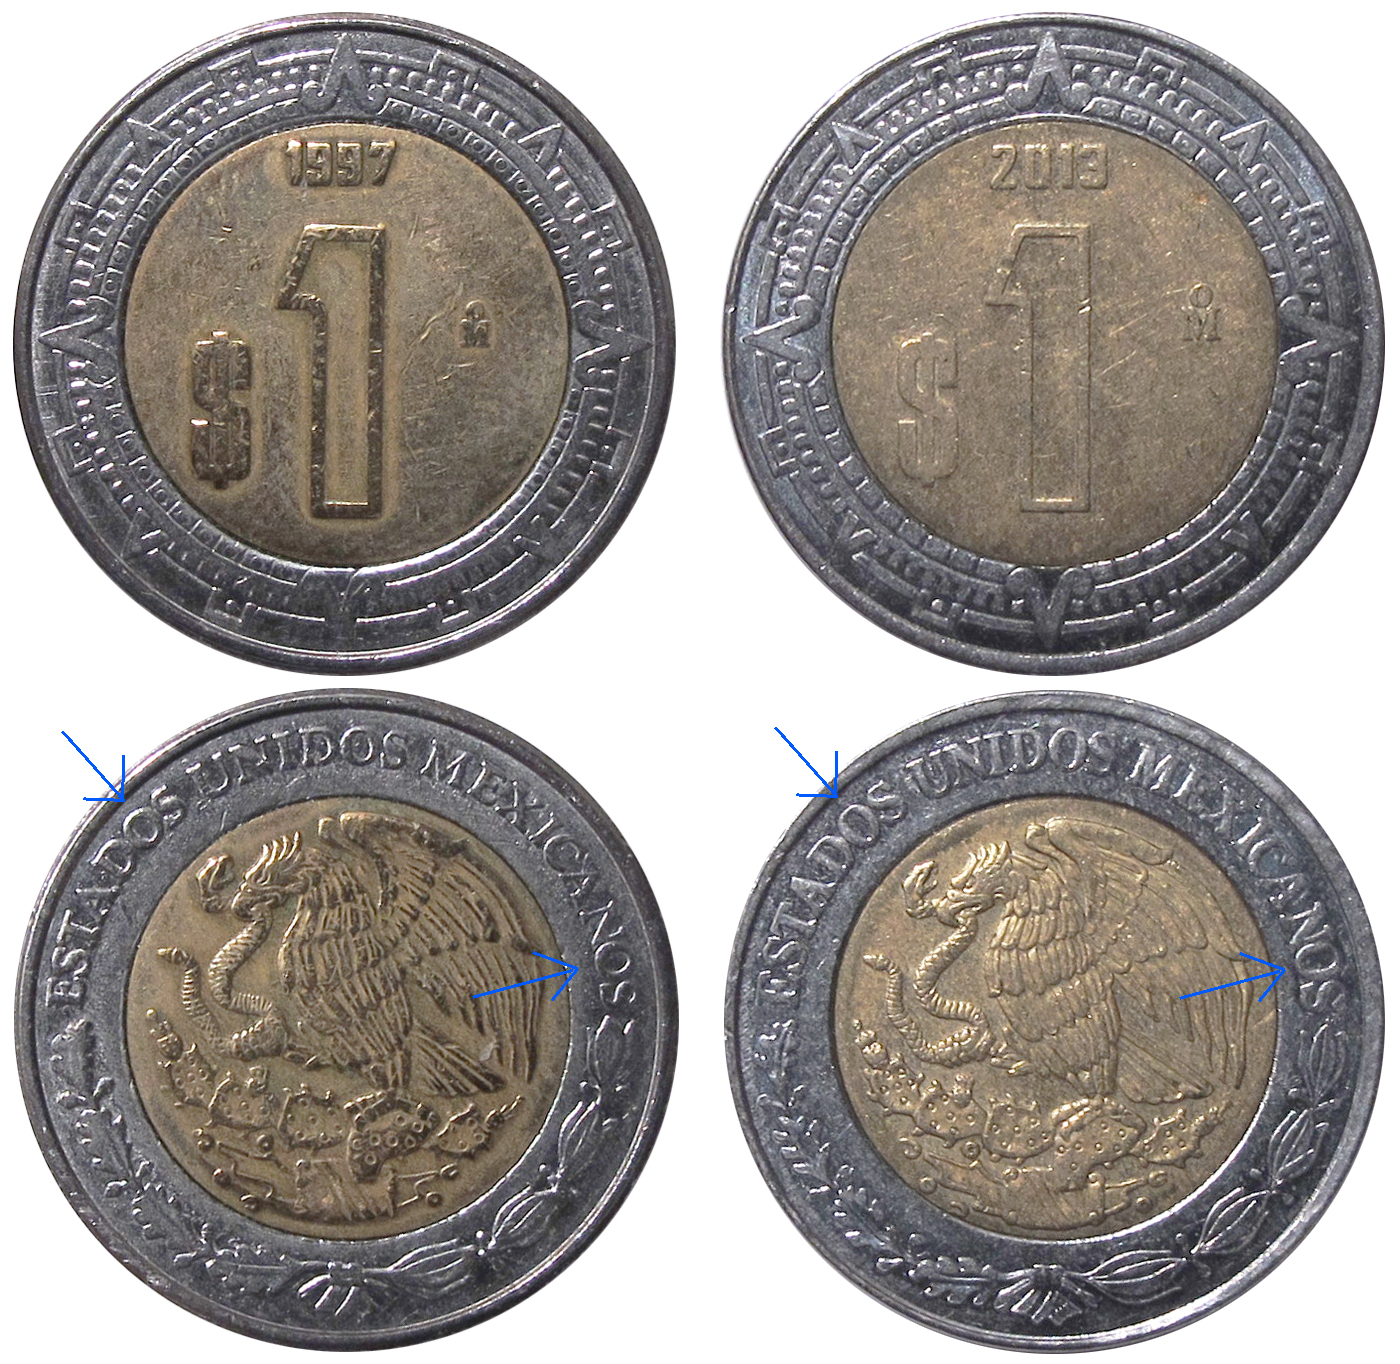 Varieties Exist Normal Vs Elongated Font On The Obverse